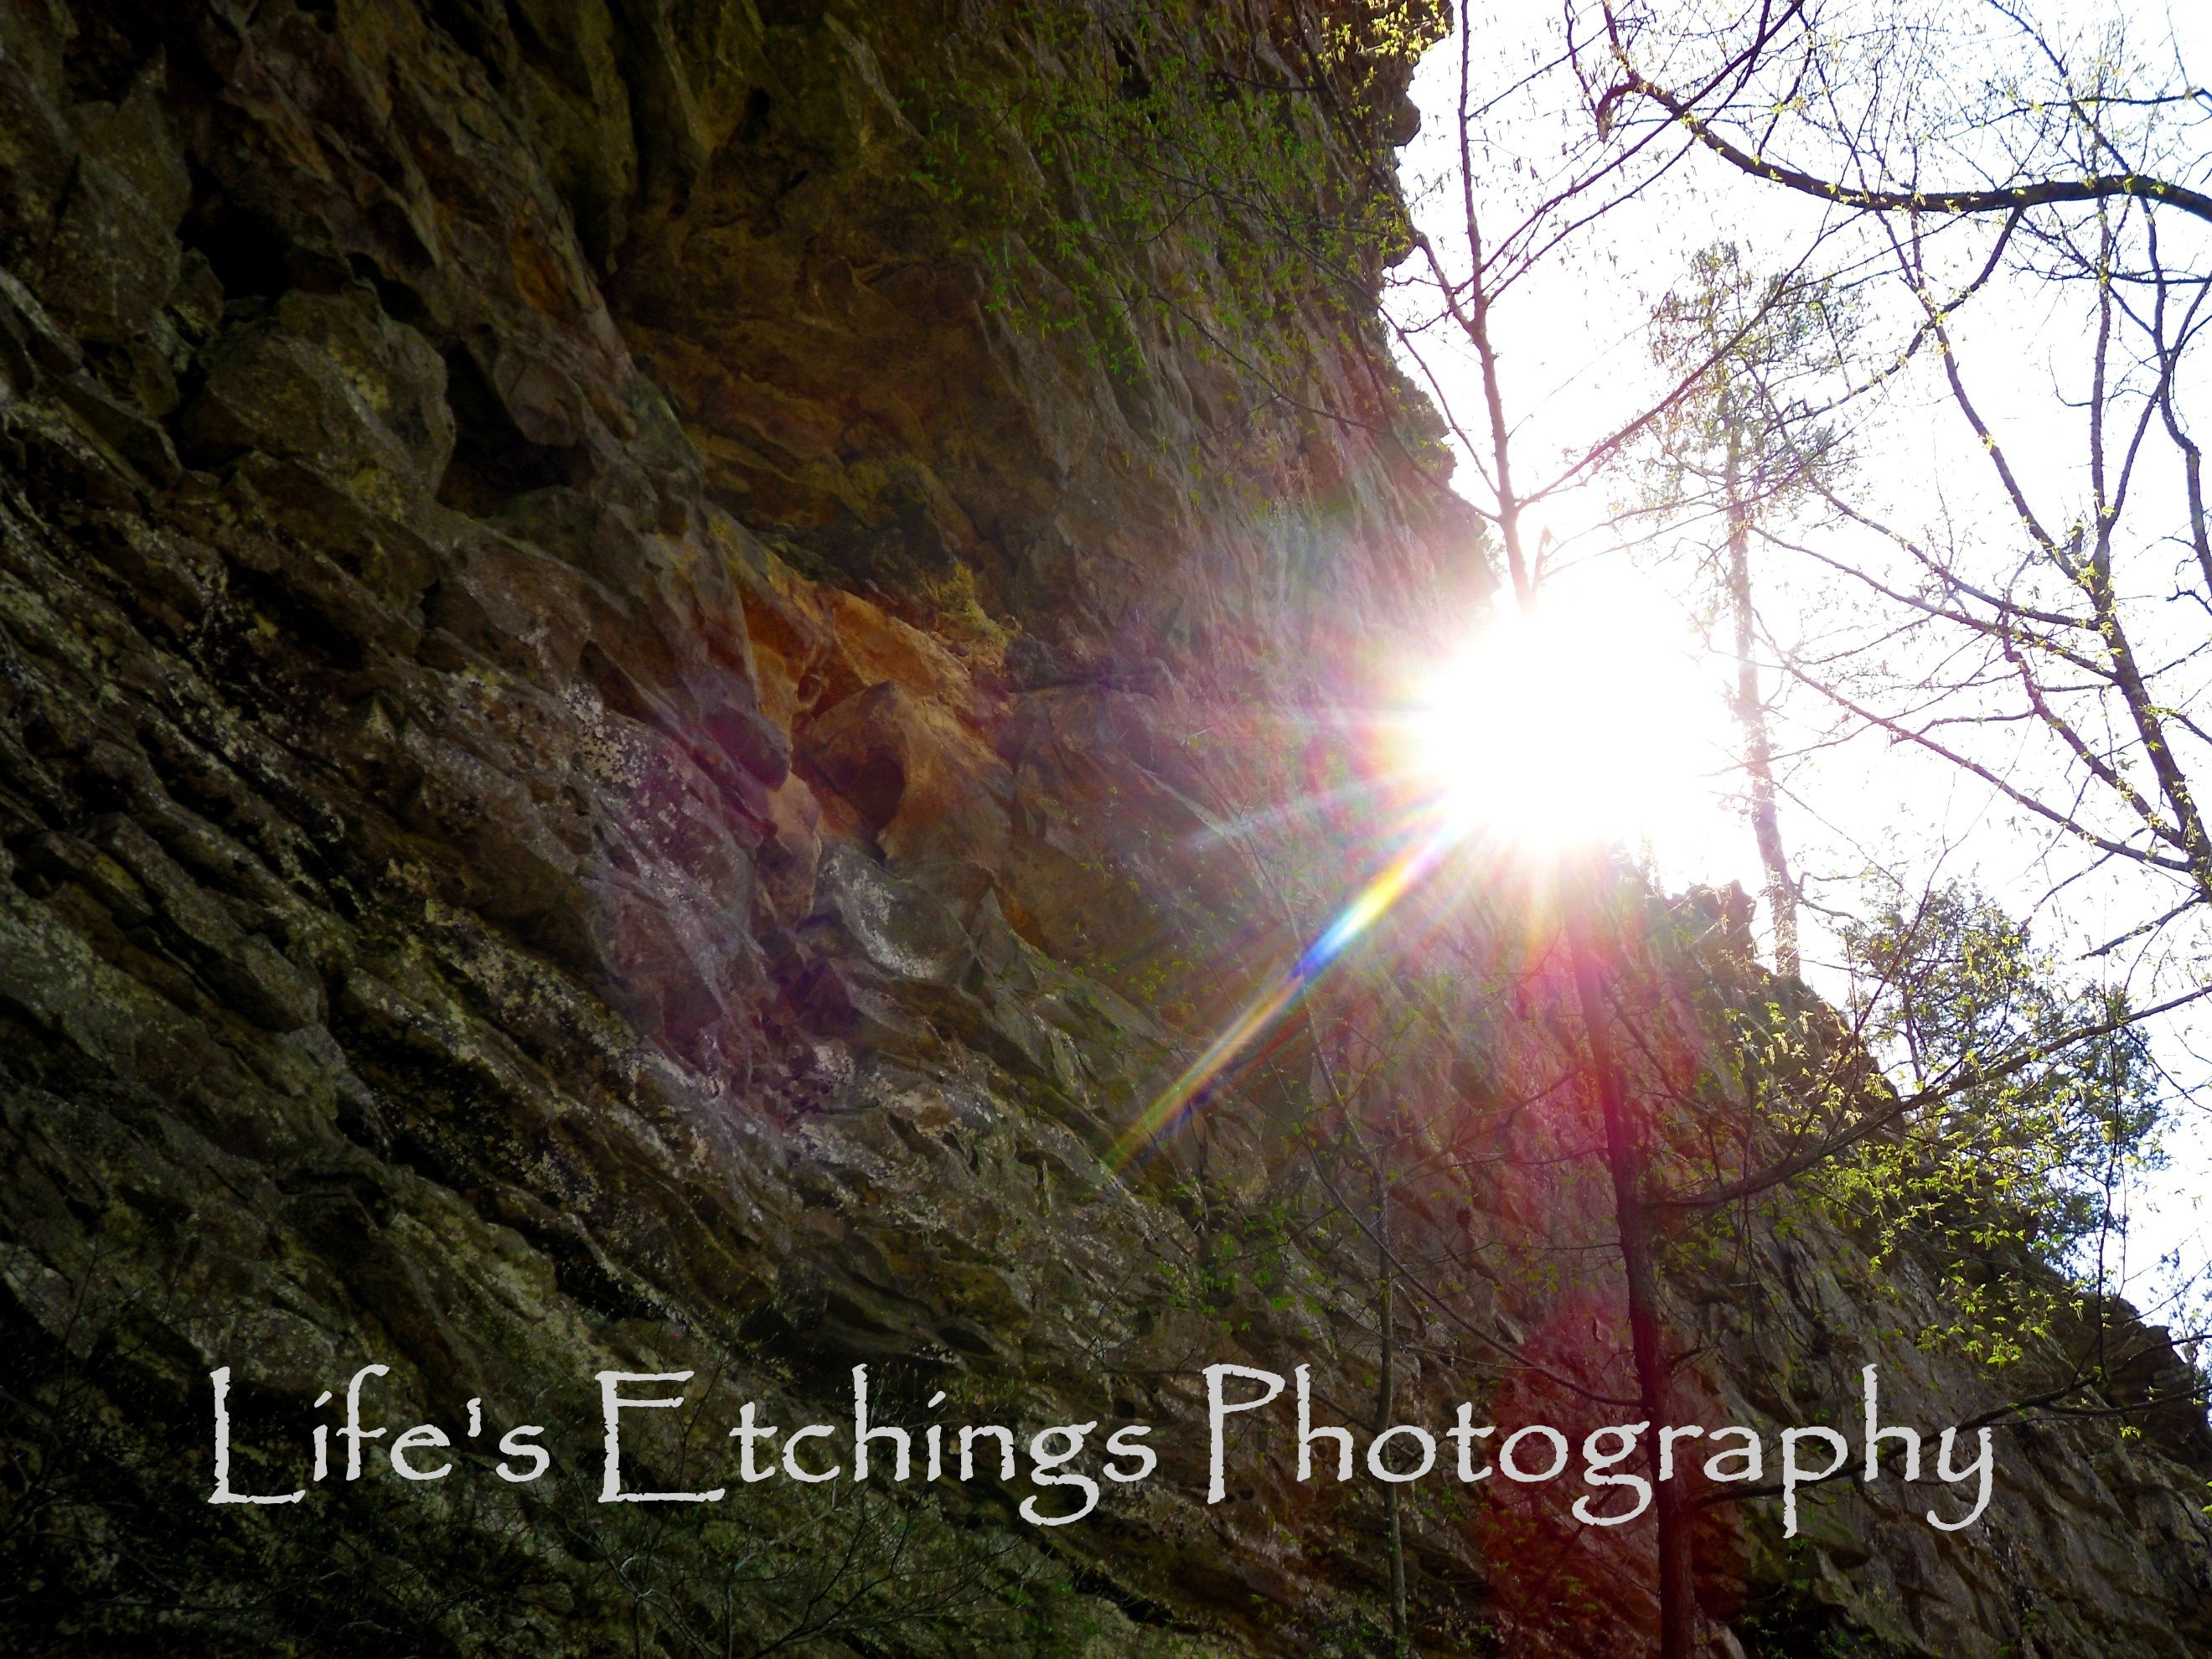 Wow - Sunlight shining over the top of Rock Face - Life's Etchings Photography